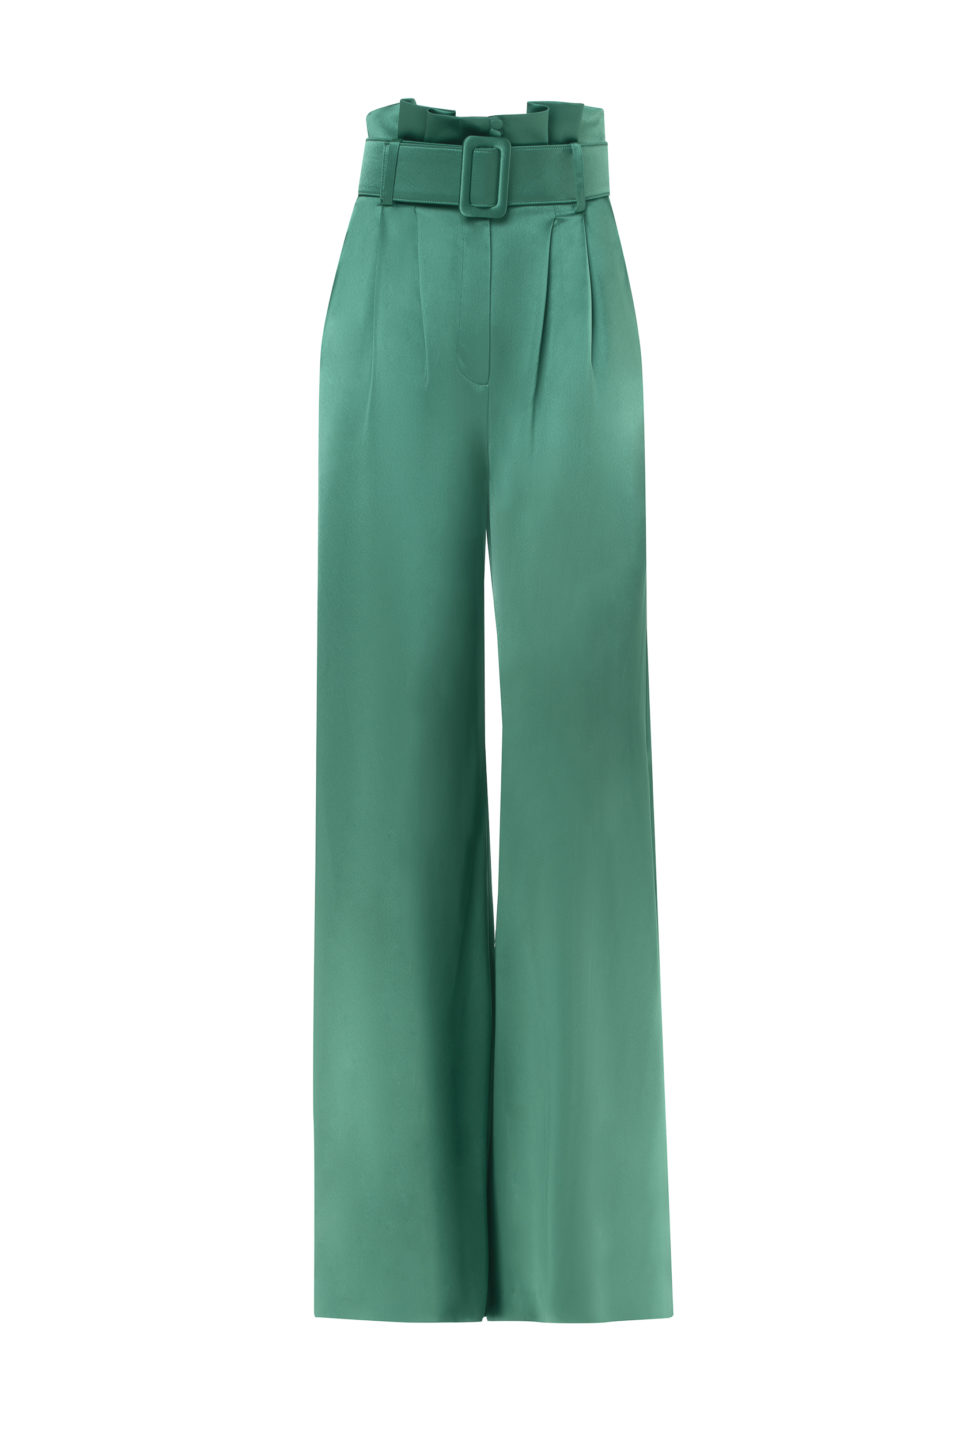 Carlene PS2136 Green Satin Gathered-Waist Palazzo Pants